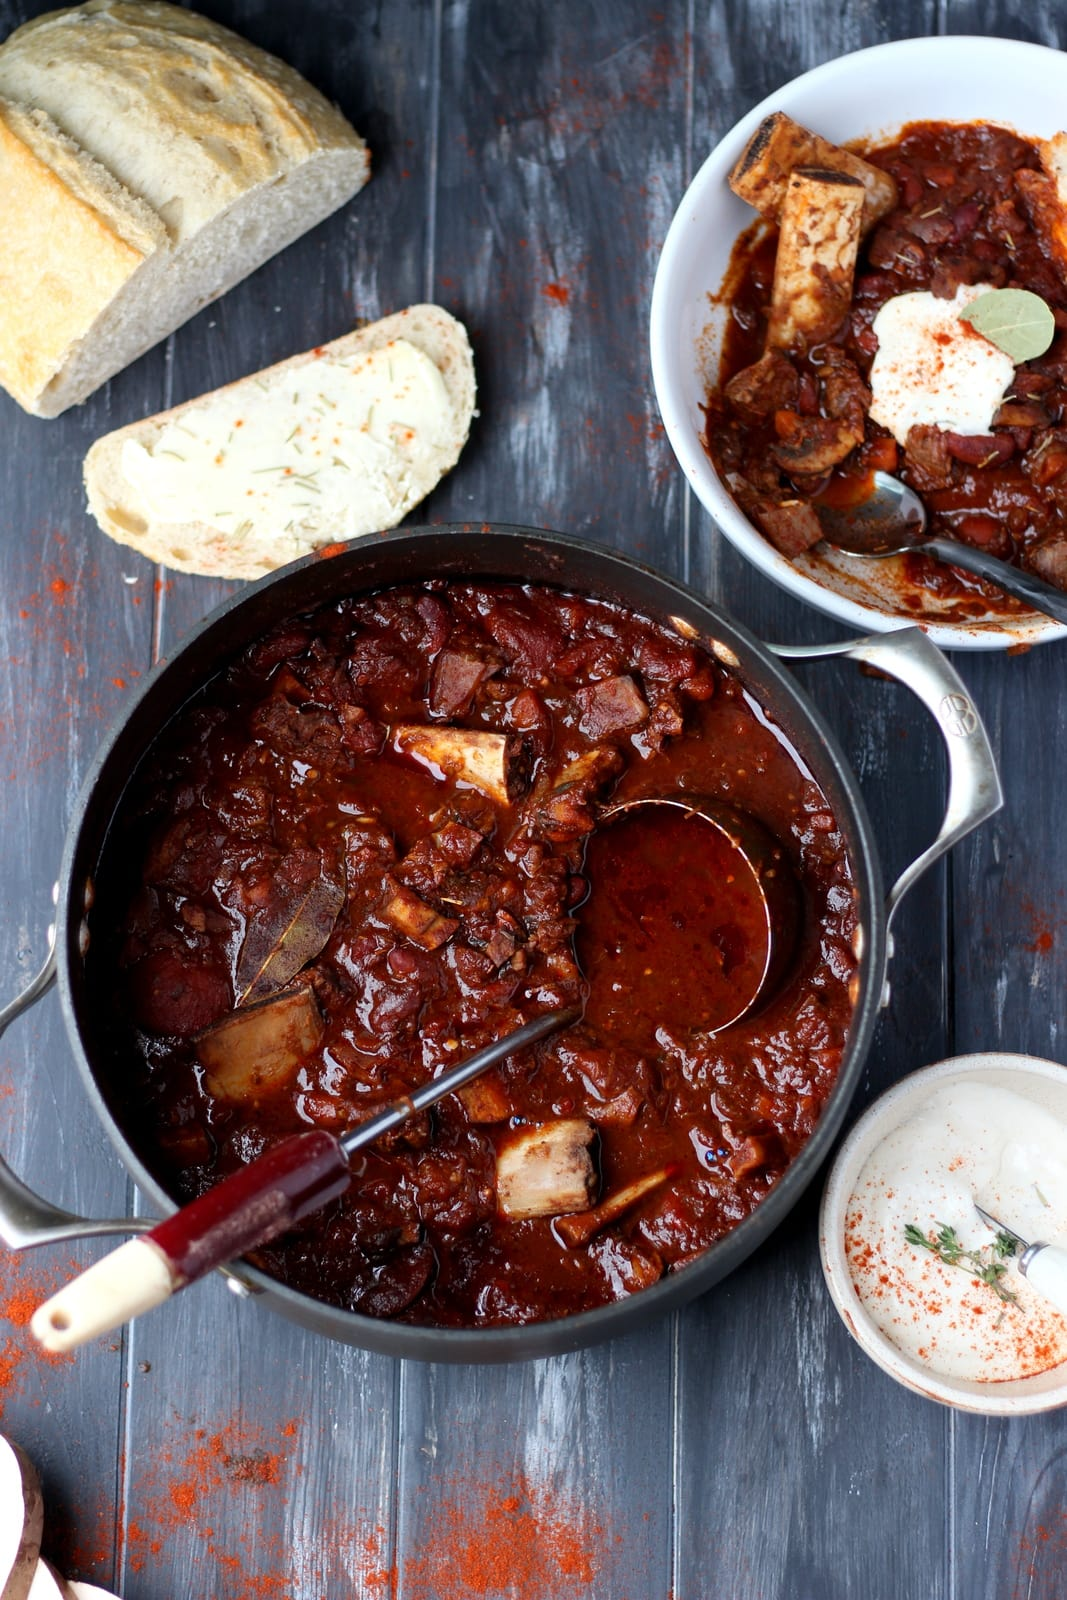 Braised Beef Short Rib Chili + Horseradish Sour Cream - amazing chili recipe with braised short ribs, mushrooms, leeks and whole tomatoes. thewoodenskillet.com #fallfood #foodphotography